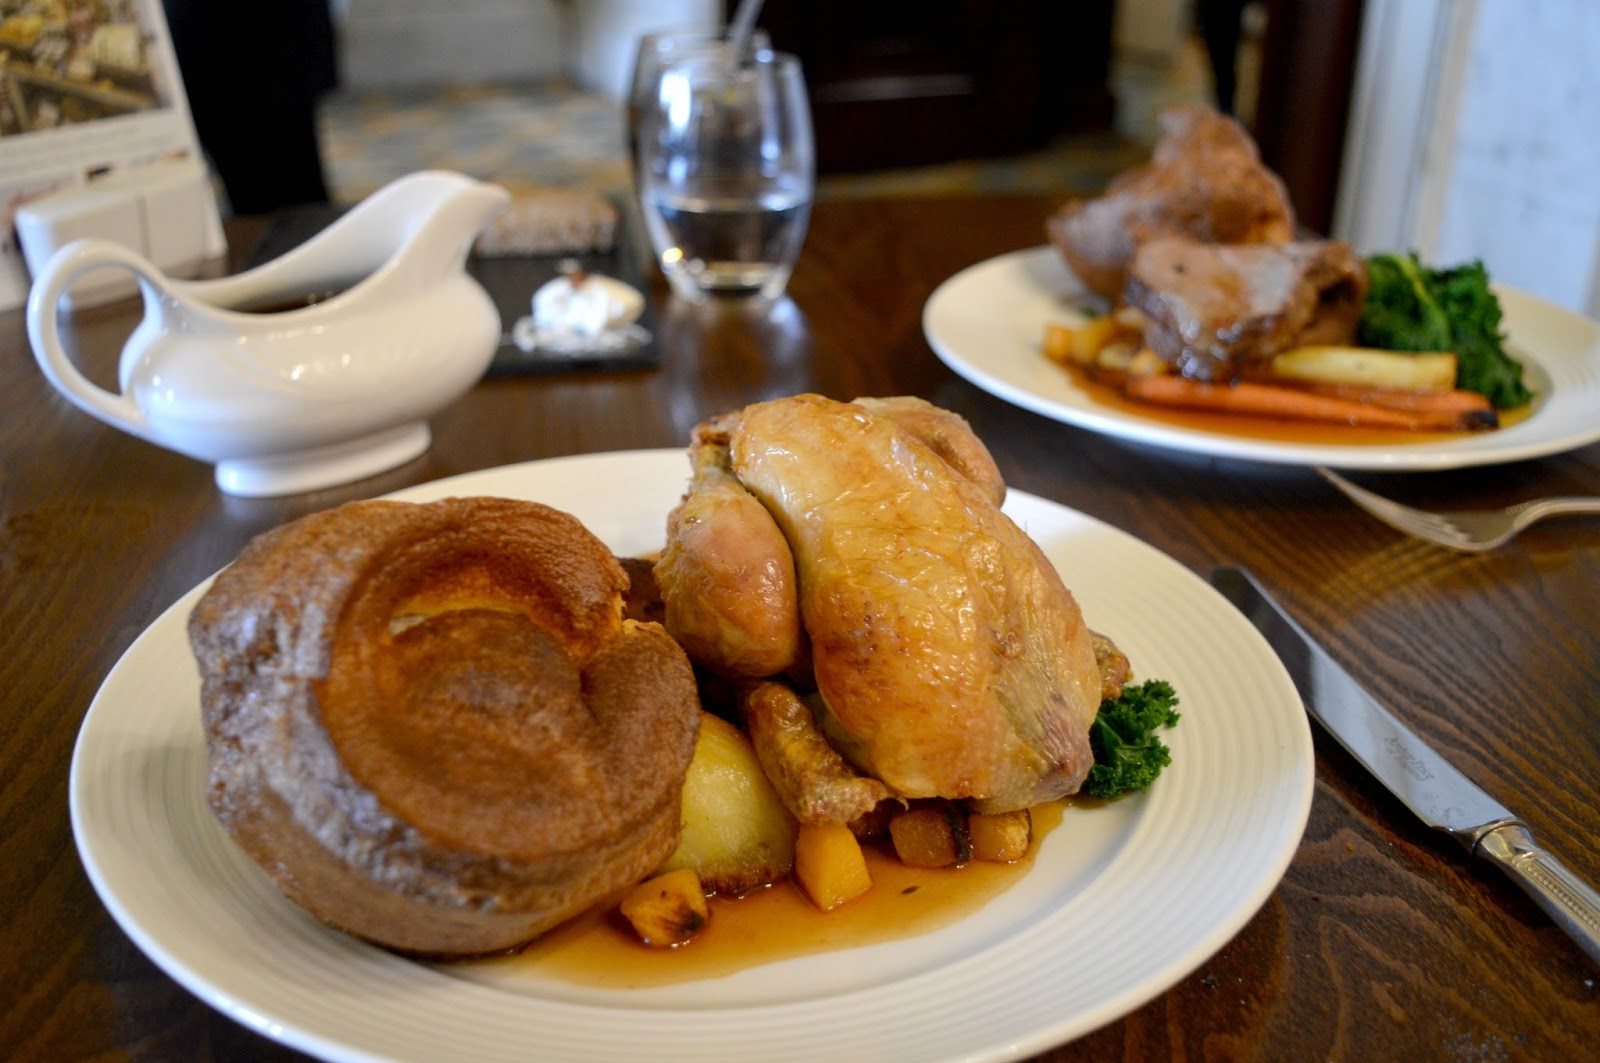 Sunday Lunch at Wynyard Hall - Roasts